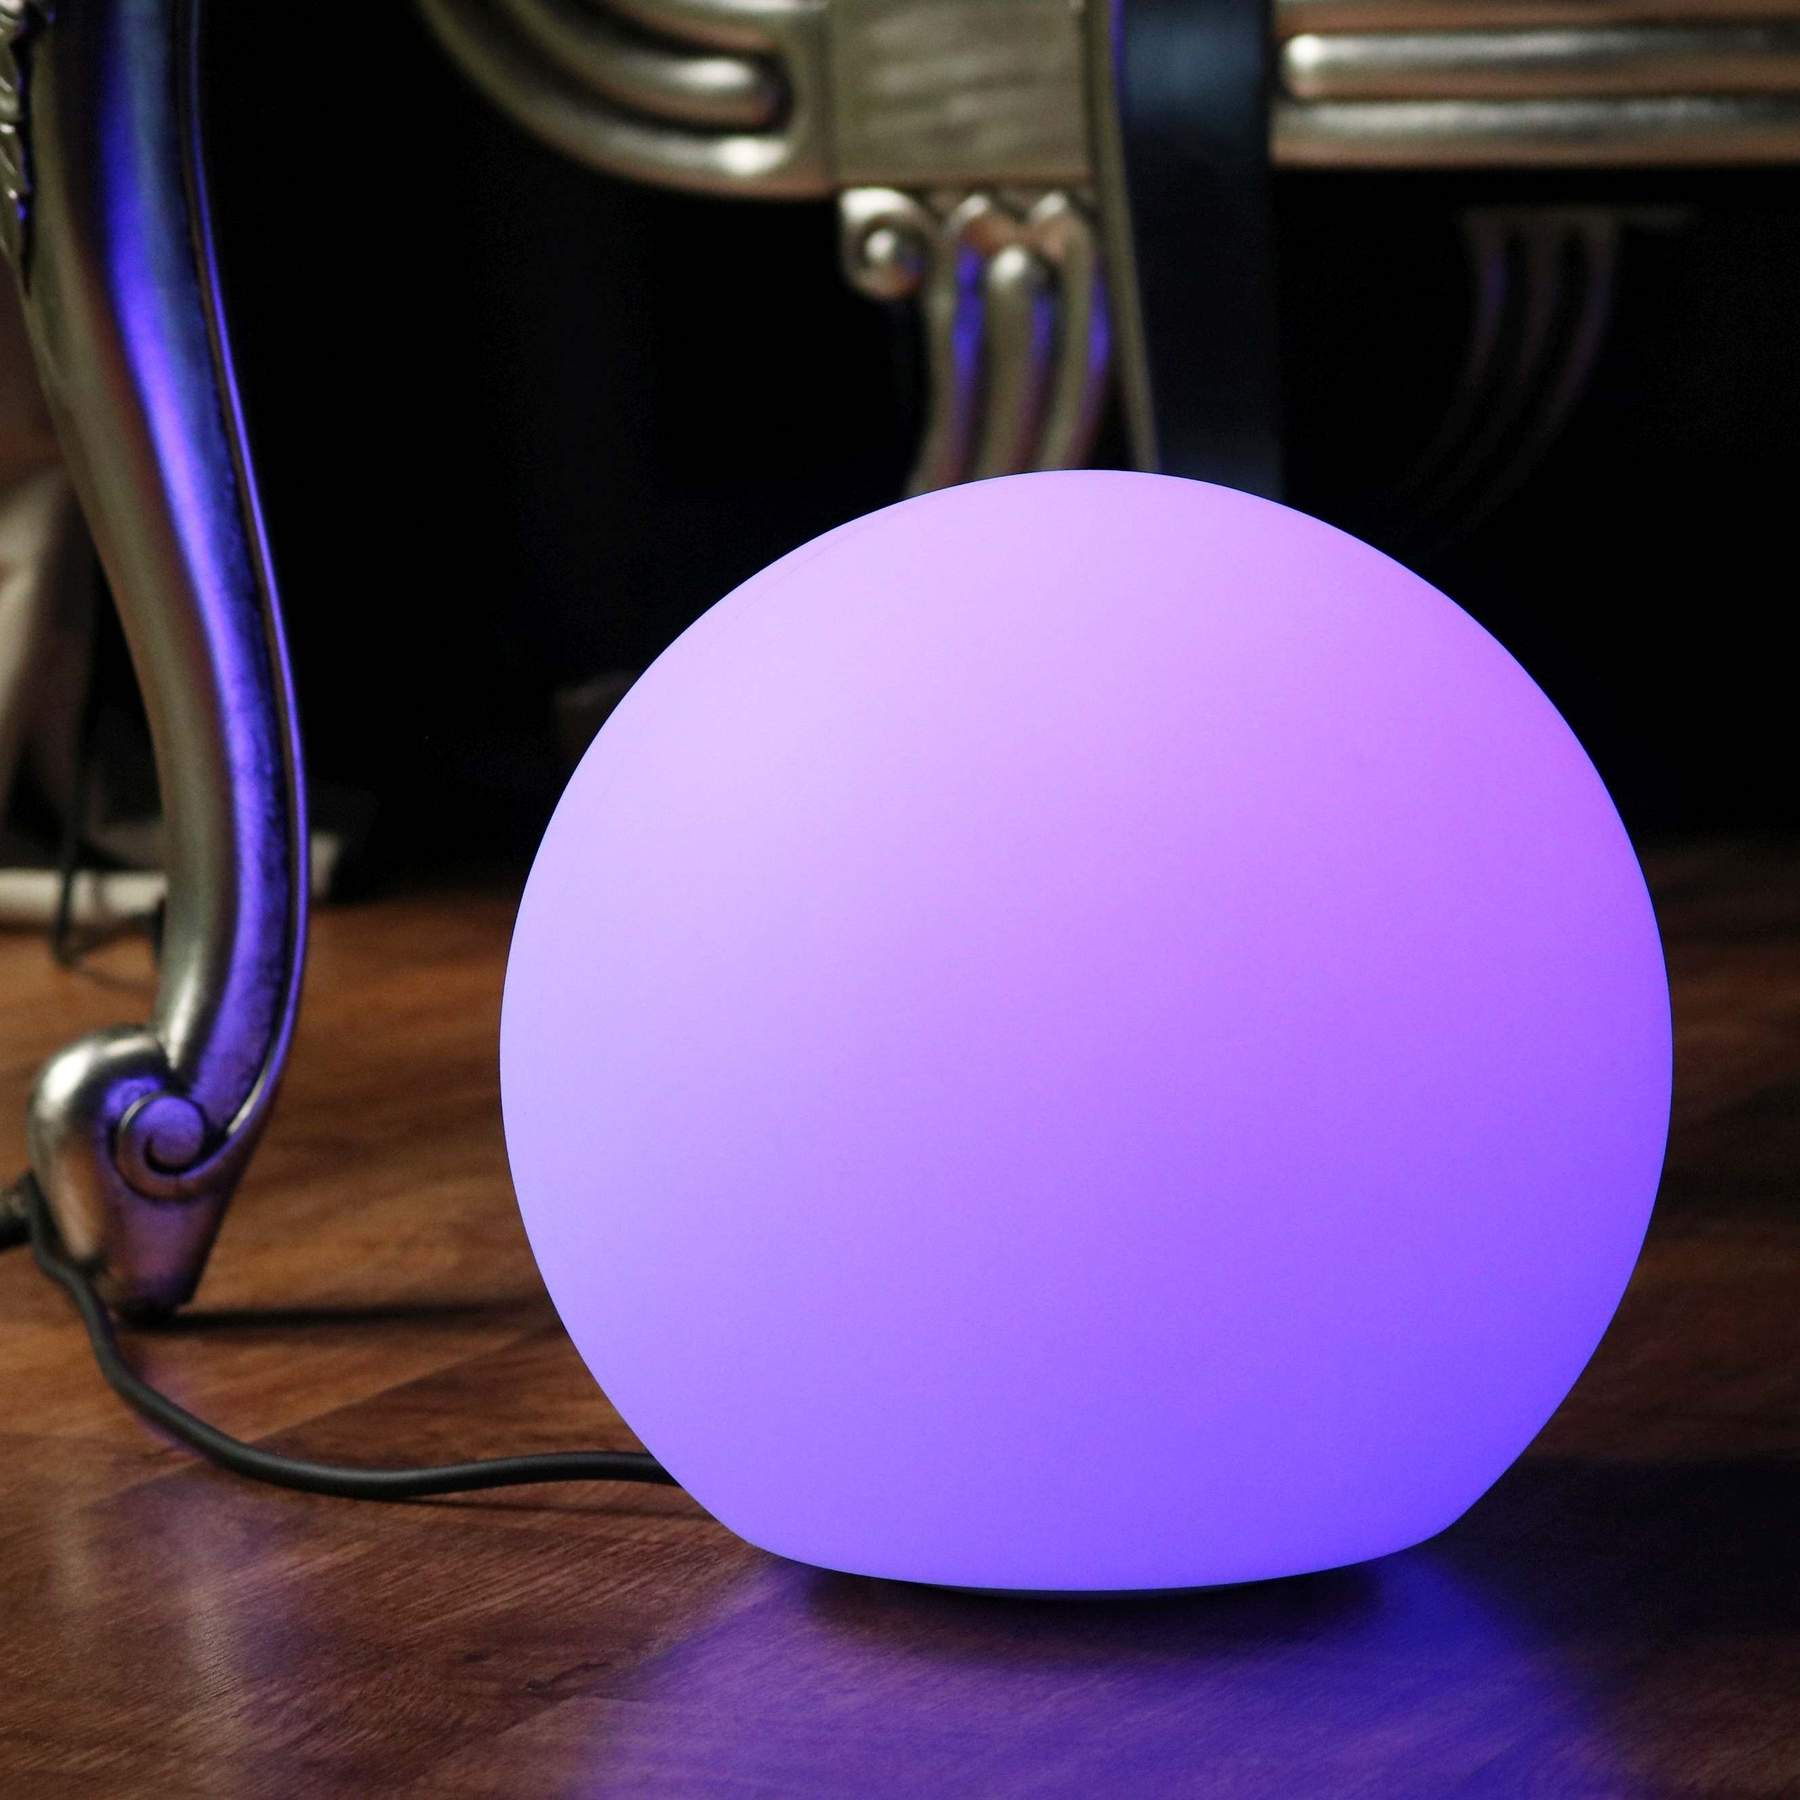 20 cm Table Globe Ball Lamps, 7.9 inch Indoor Wireless Light up Balls, Color Changing Balls